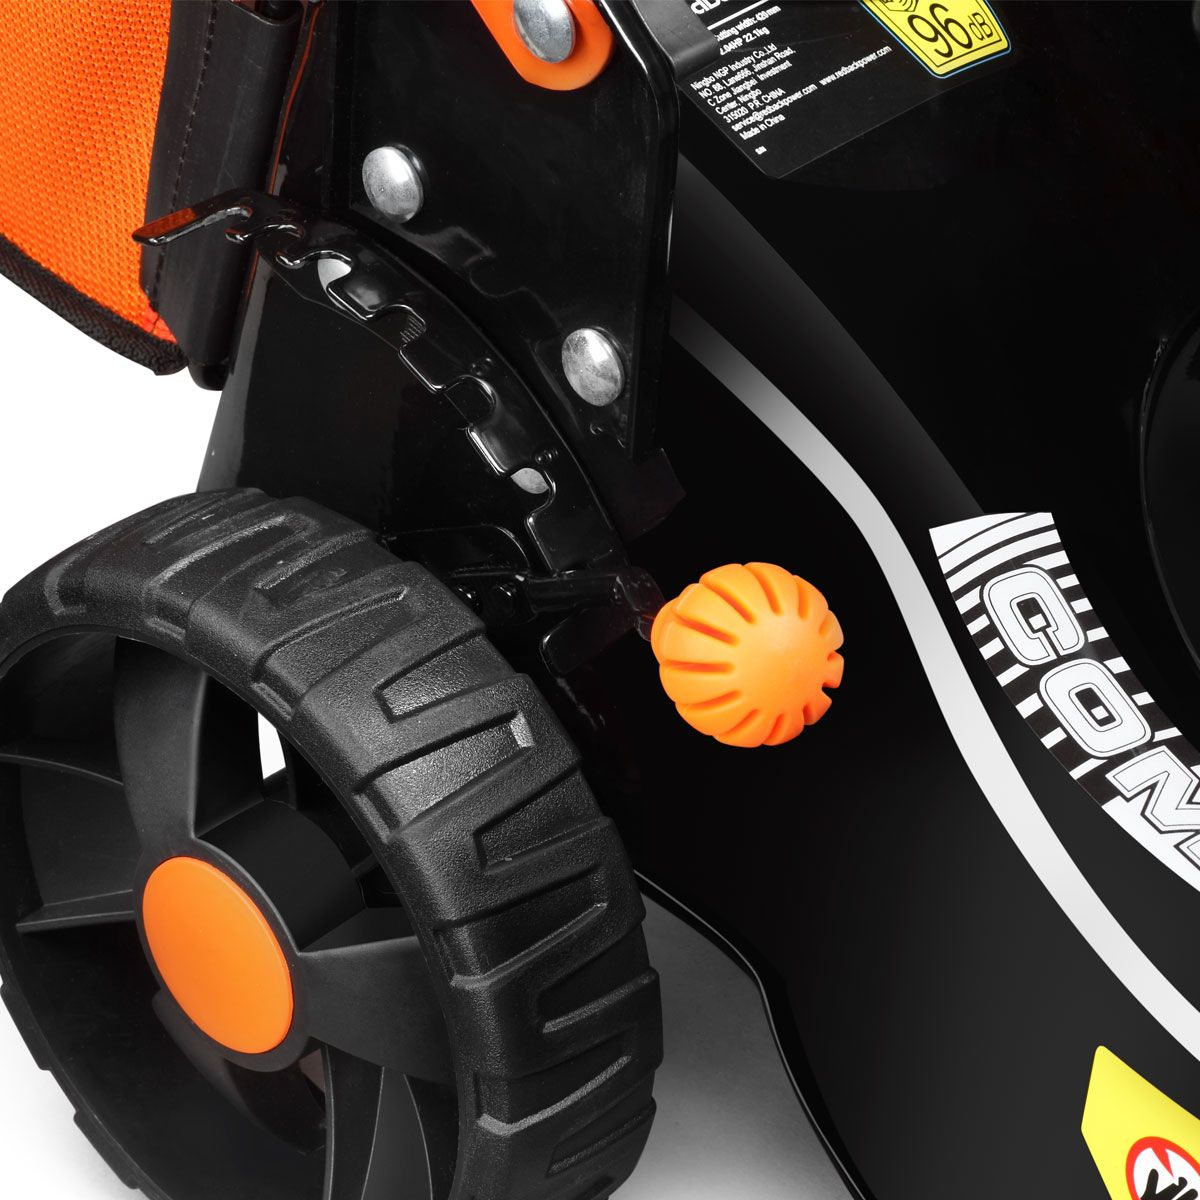 Pin on RedBacK S421A Lawnmower